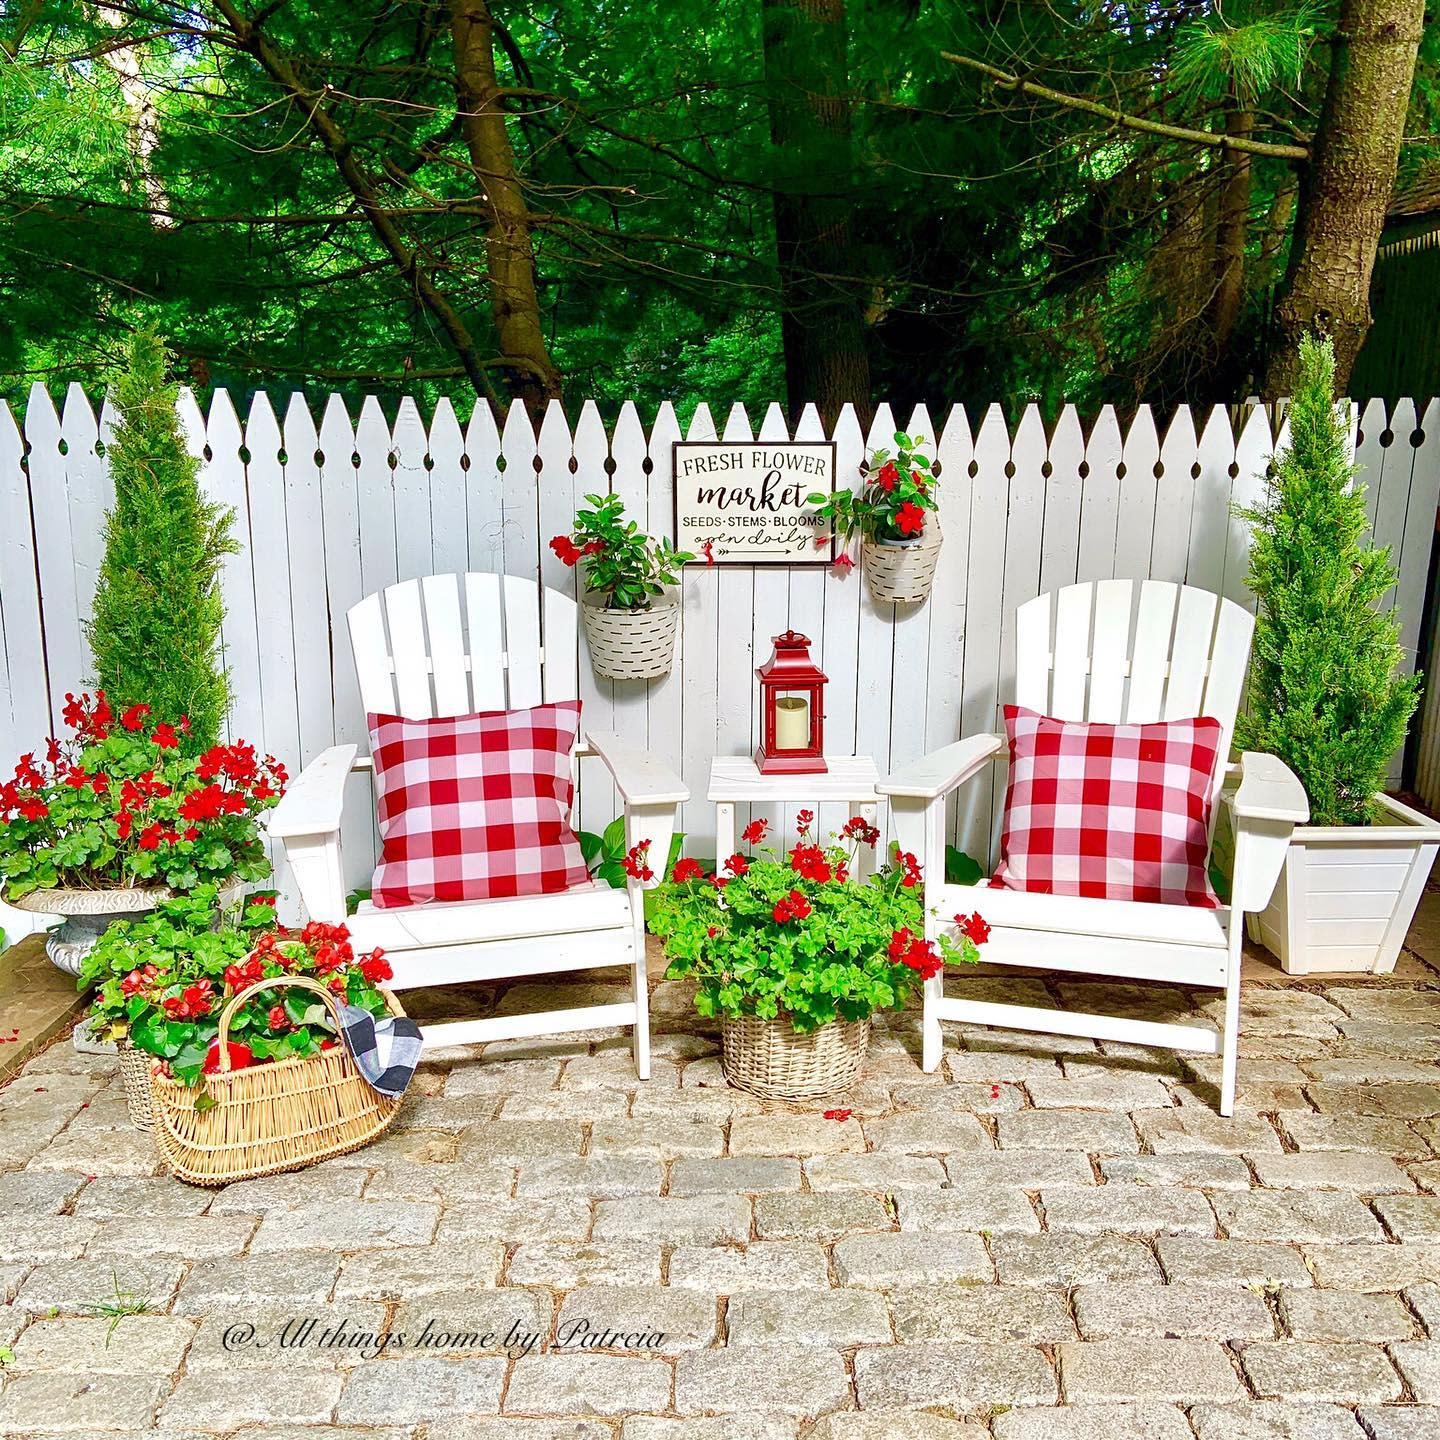 Paved Cheap Patio Ideas -allthingshome_by_patricia